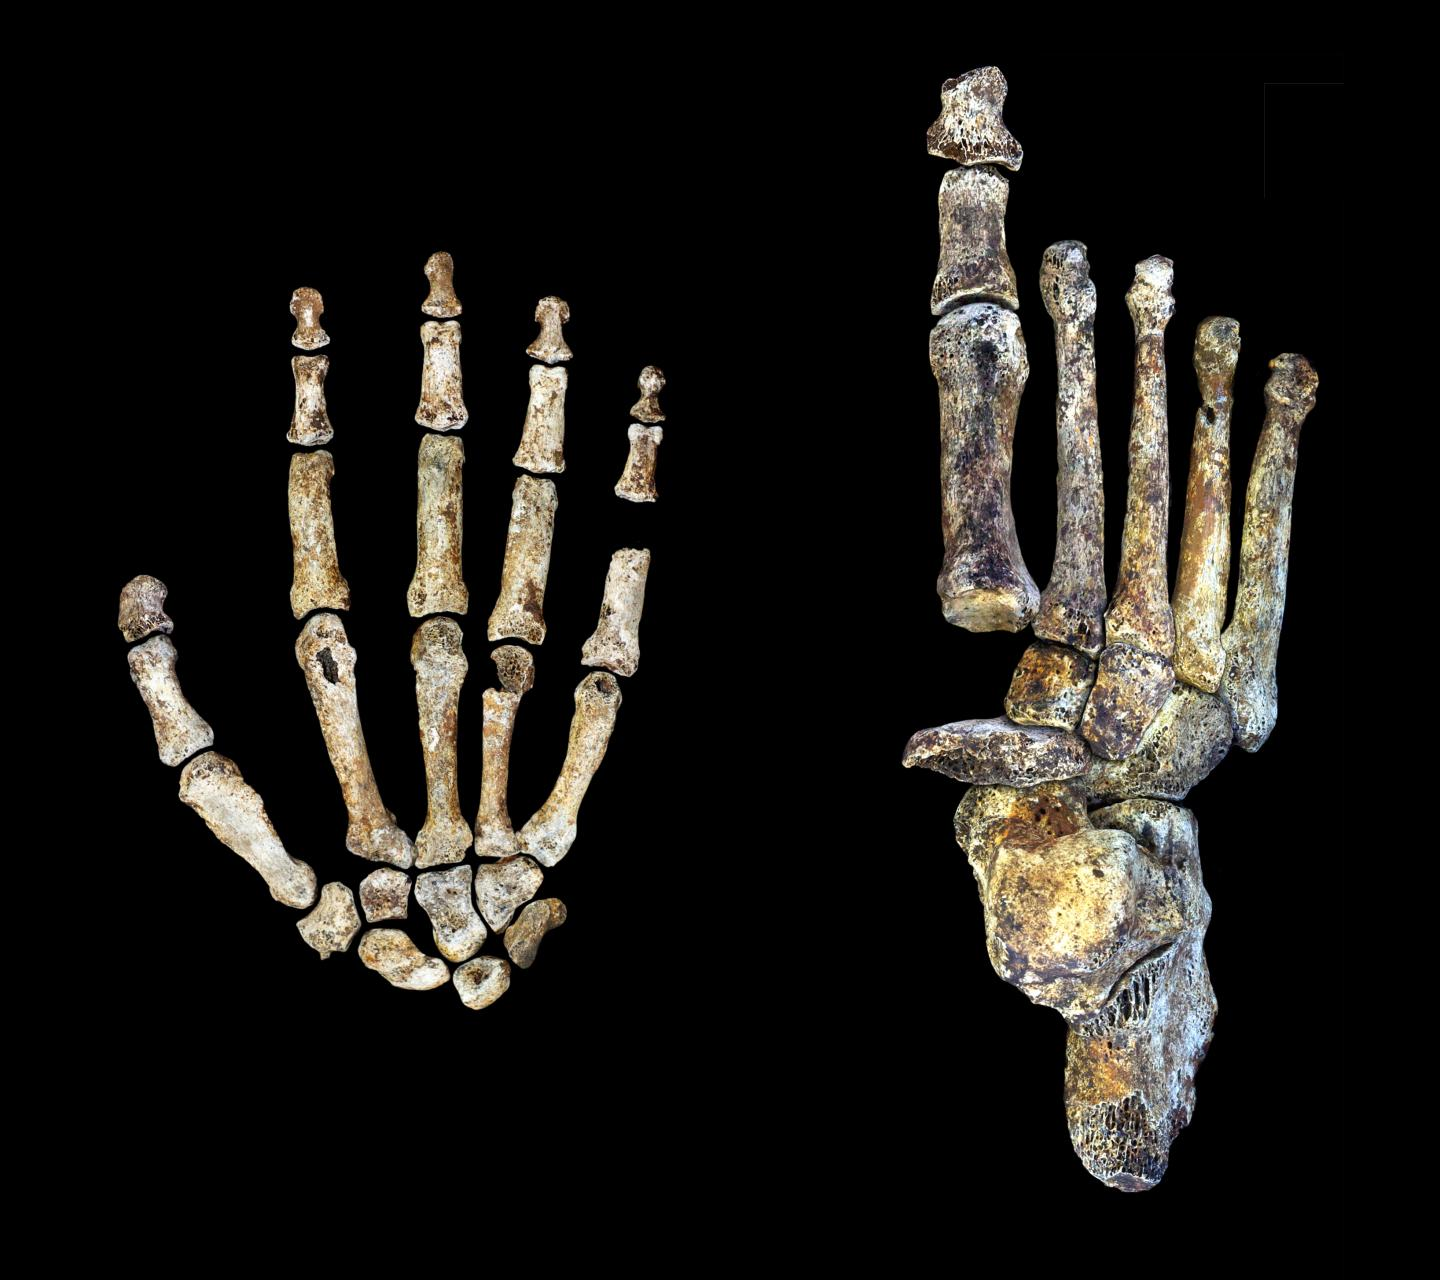 Homo naledi May Have Been Able to Walk, Climb, and Use Tools - Archaeology Magazine